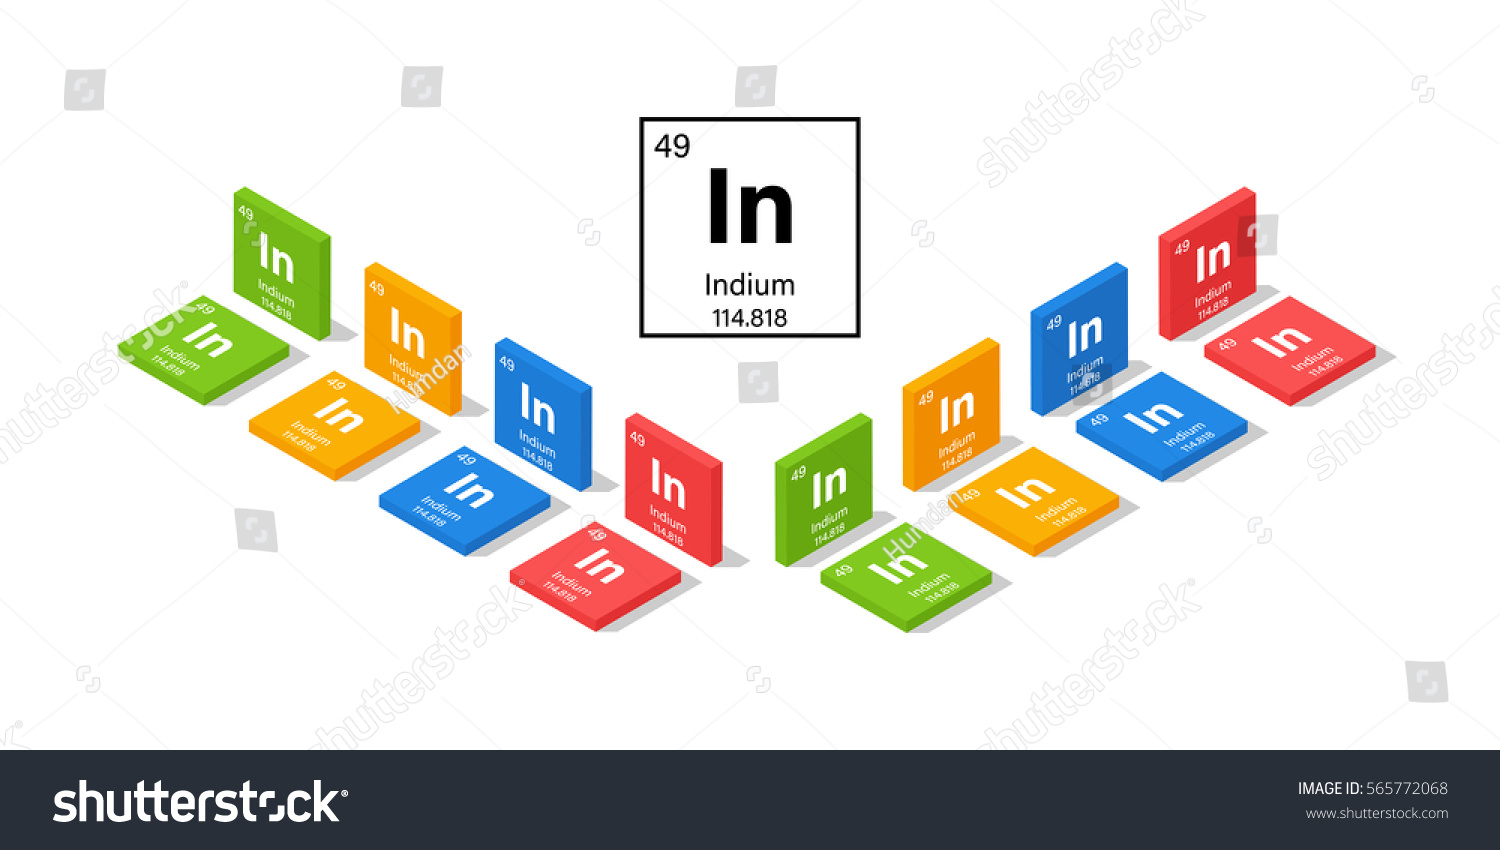 Indium on the periodic table image collections periodic table images indium on the periodic table choice image periodic table images elements periodic table indium 3d isometric gamestrikefo Image collections